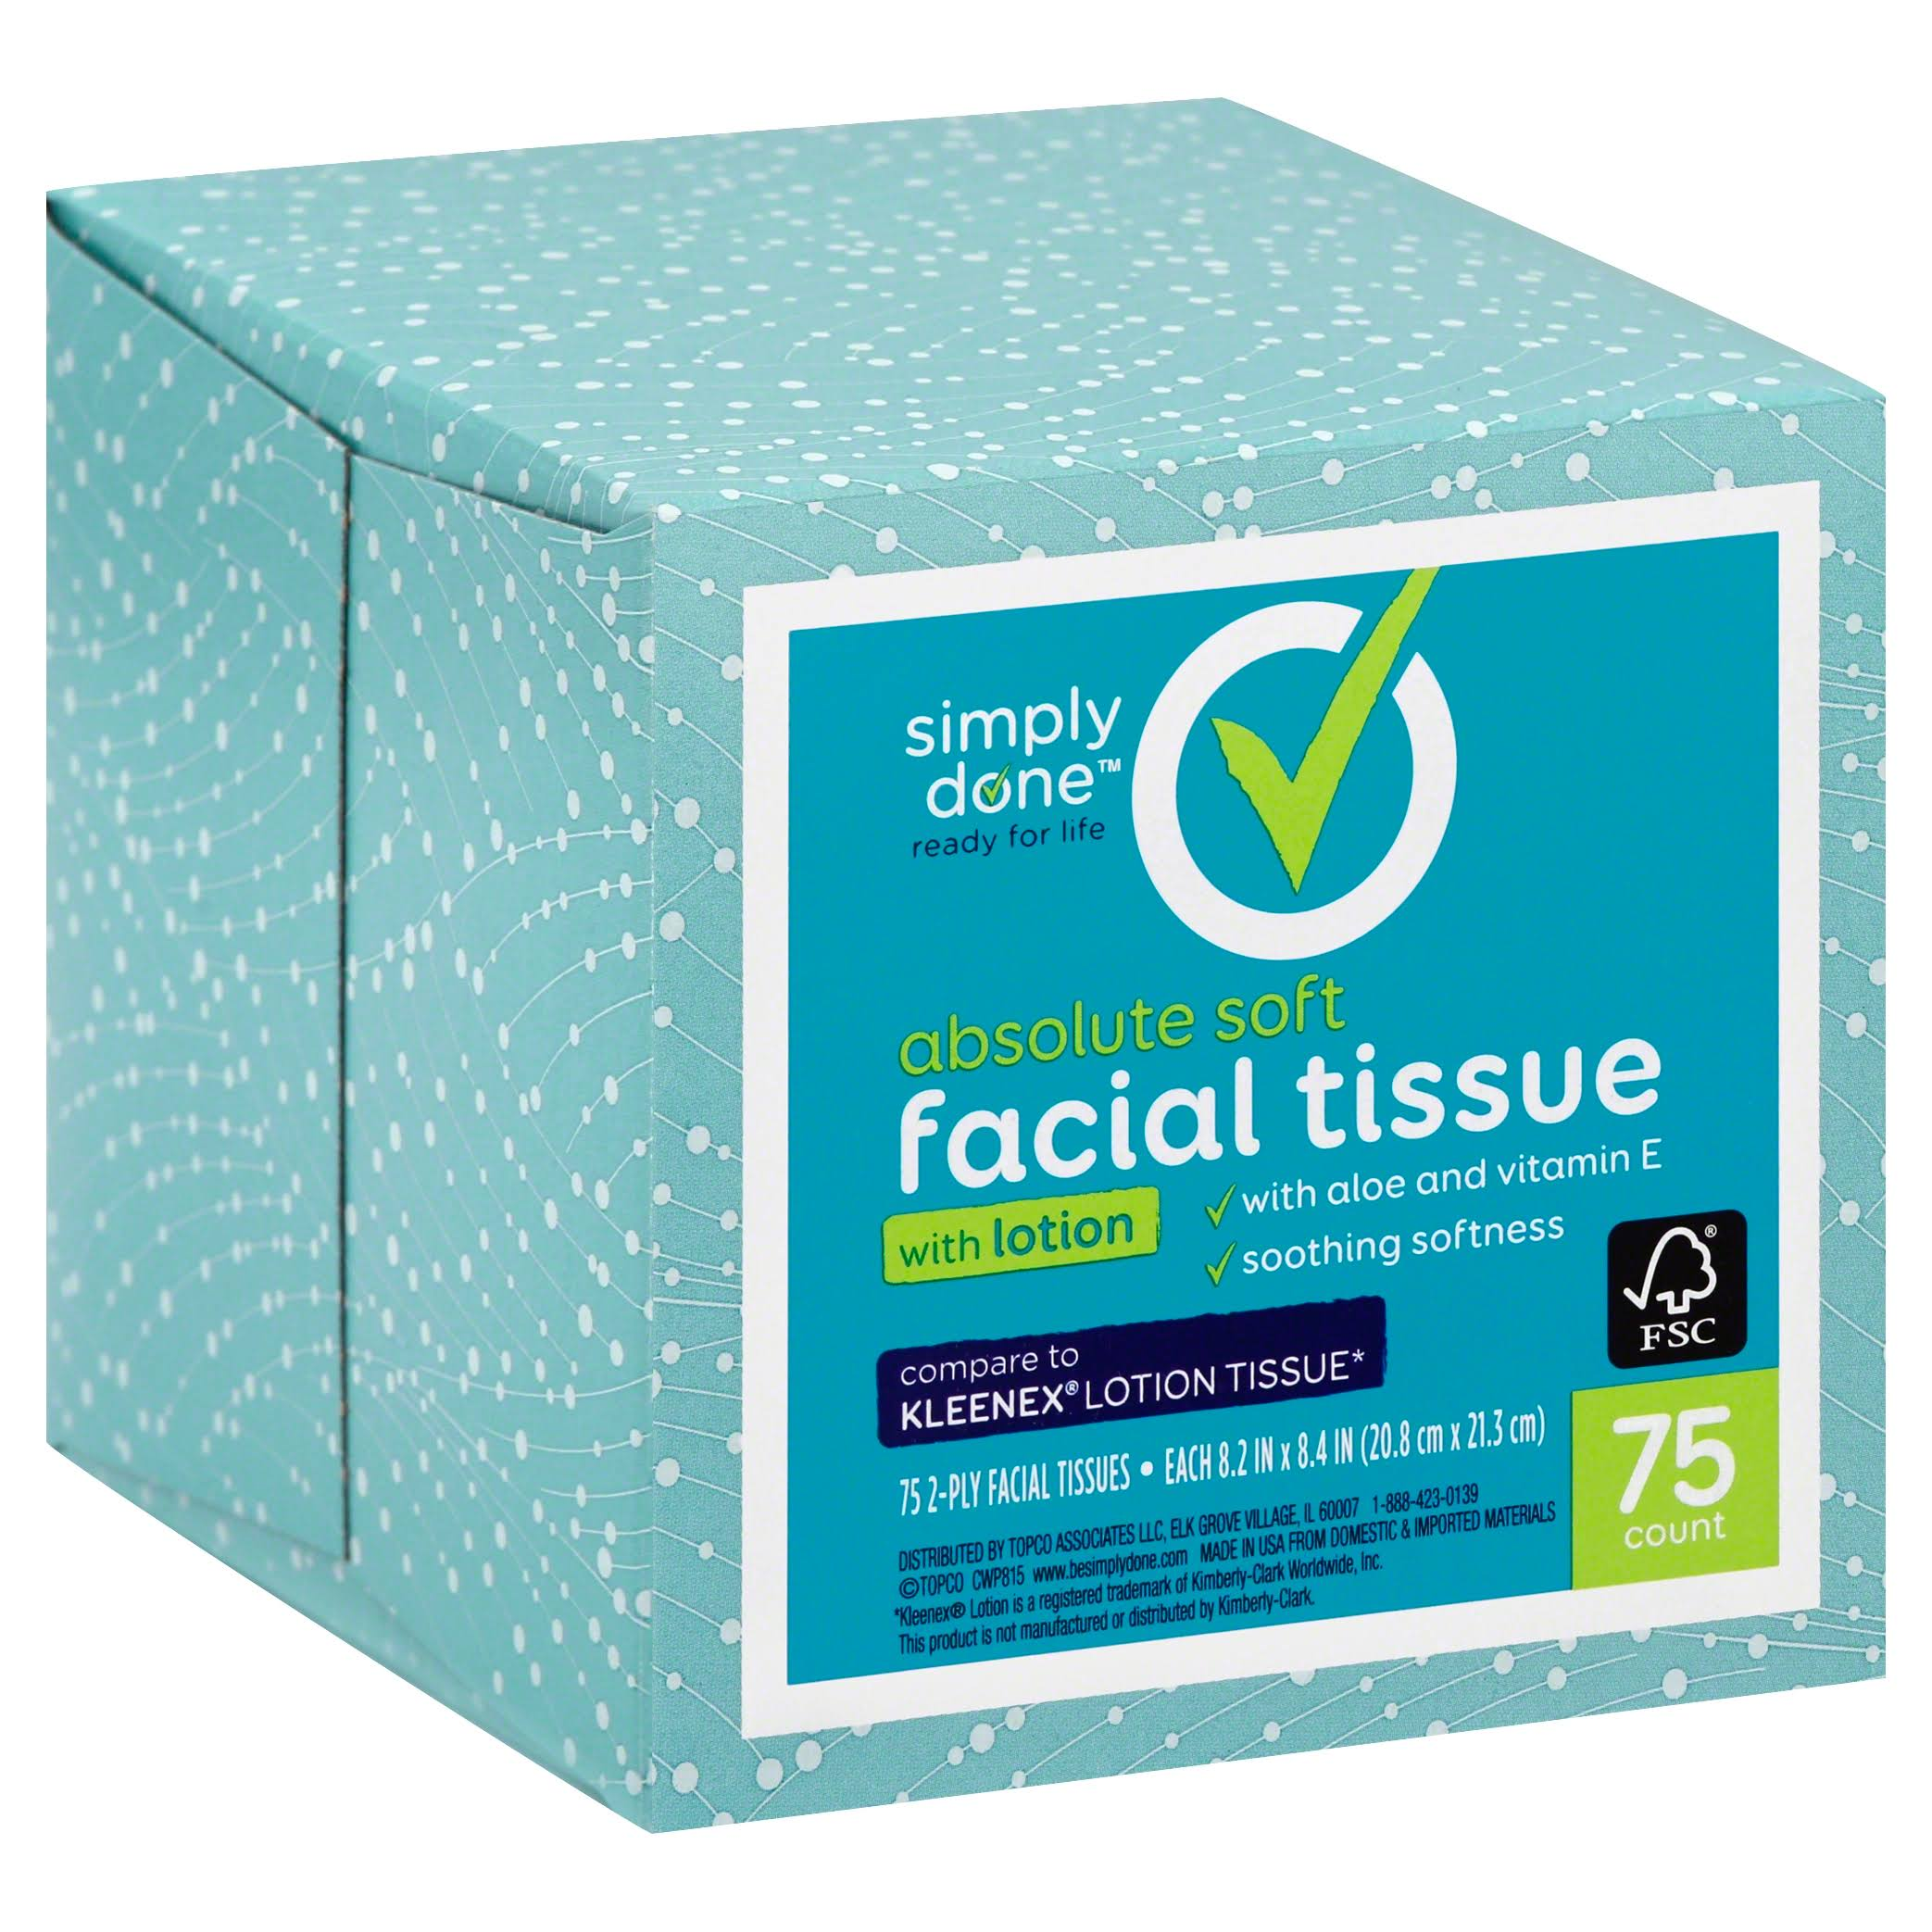 Simply Done Facial Tissue Cube - with Lotion, 75ct